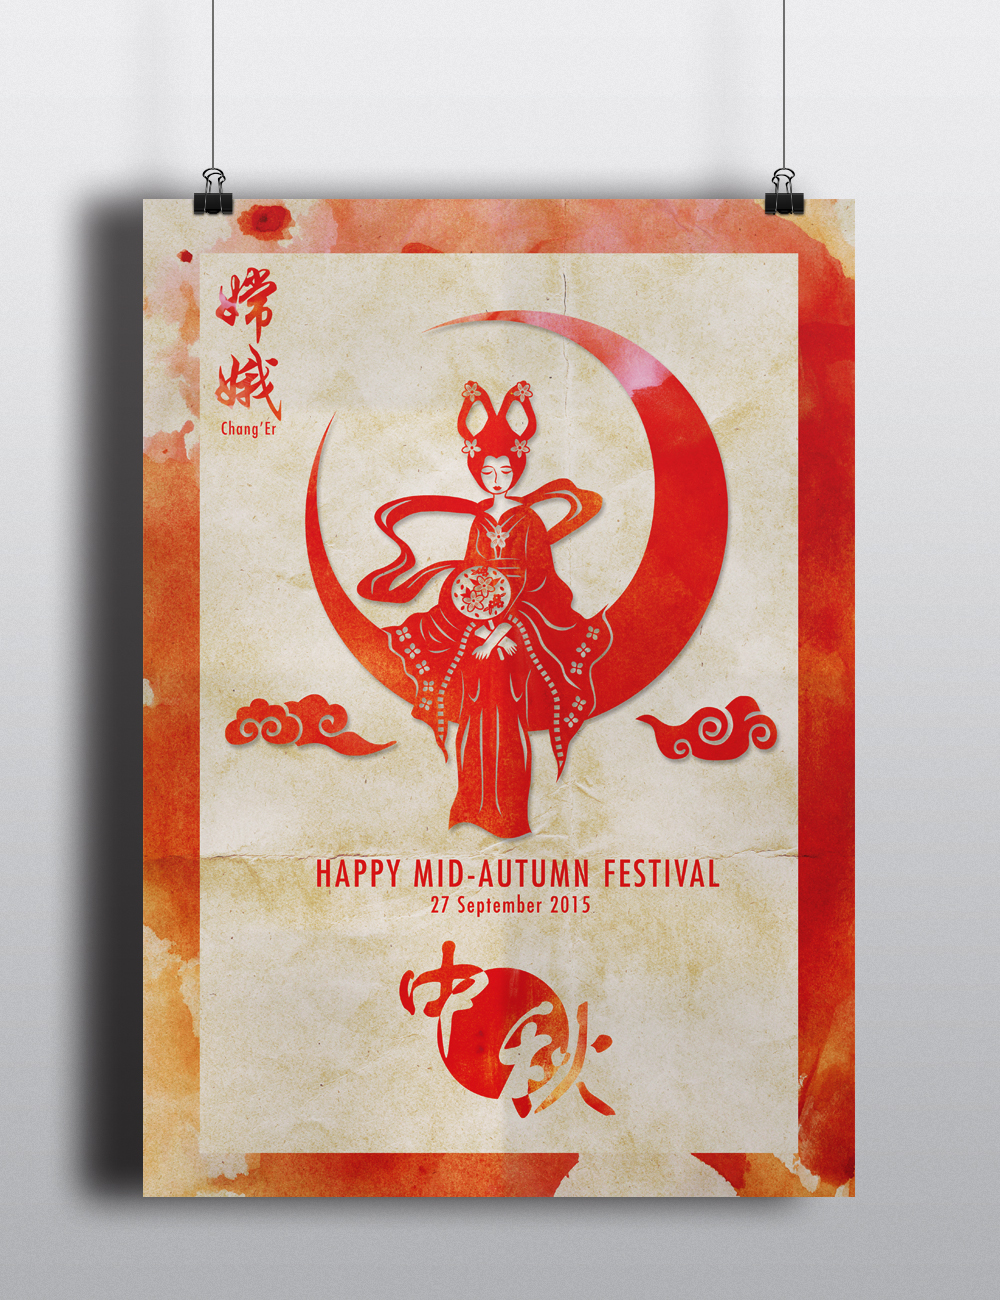 A series of 4 posters created to celebrate the Chinese Mid-Autumn Festival. Inspired by traditional Chinese paper-cutting and calligraphy.